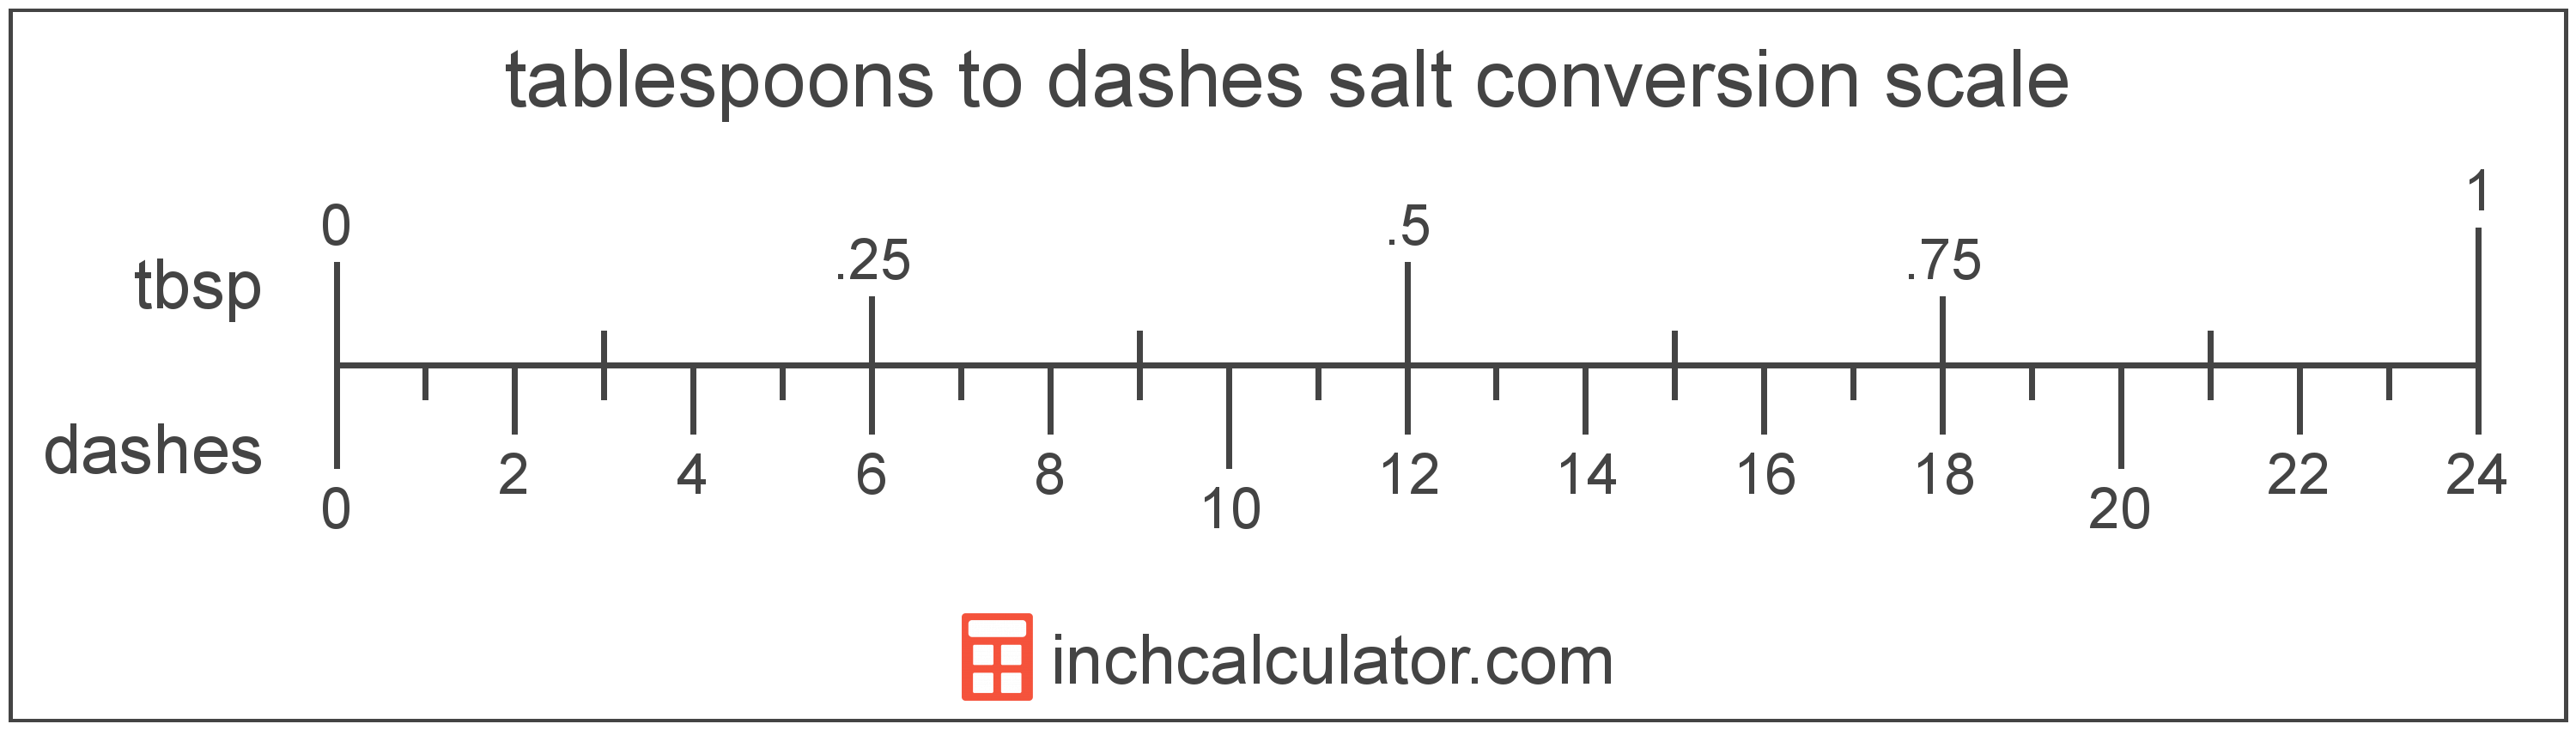 conversion scale showing dashes and equivalent tablespoons salt volume values